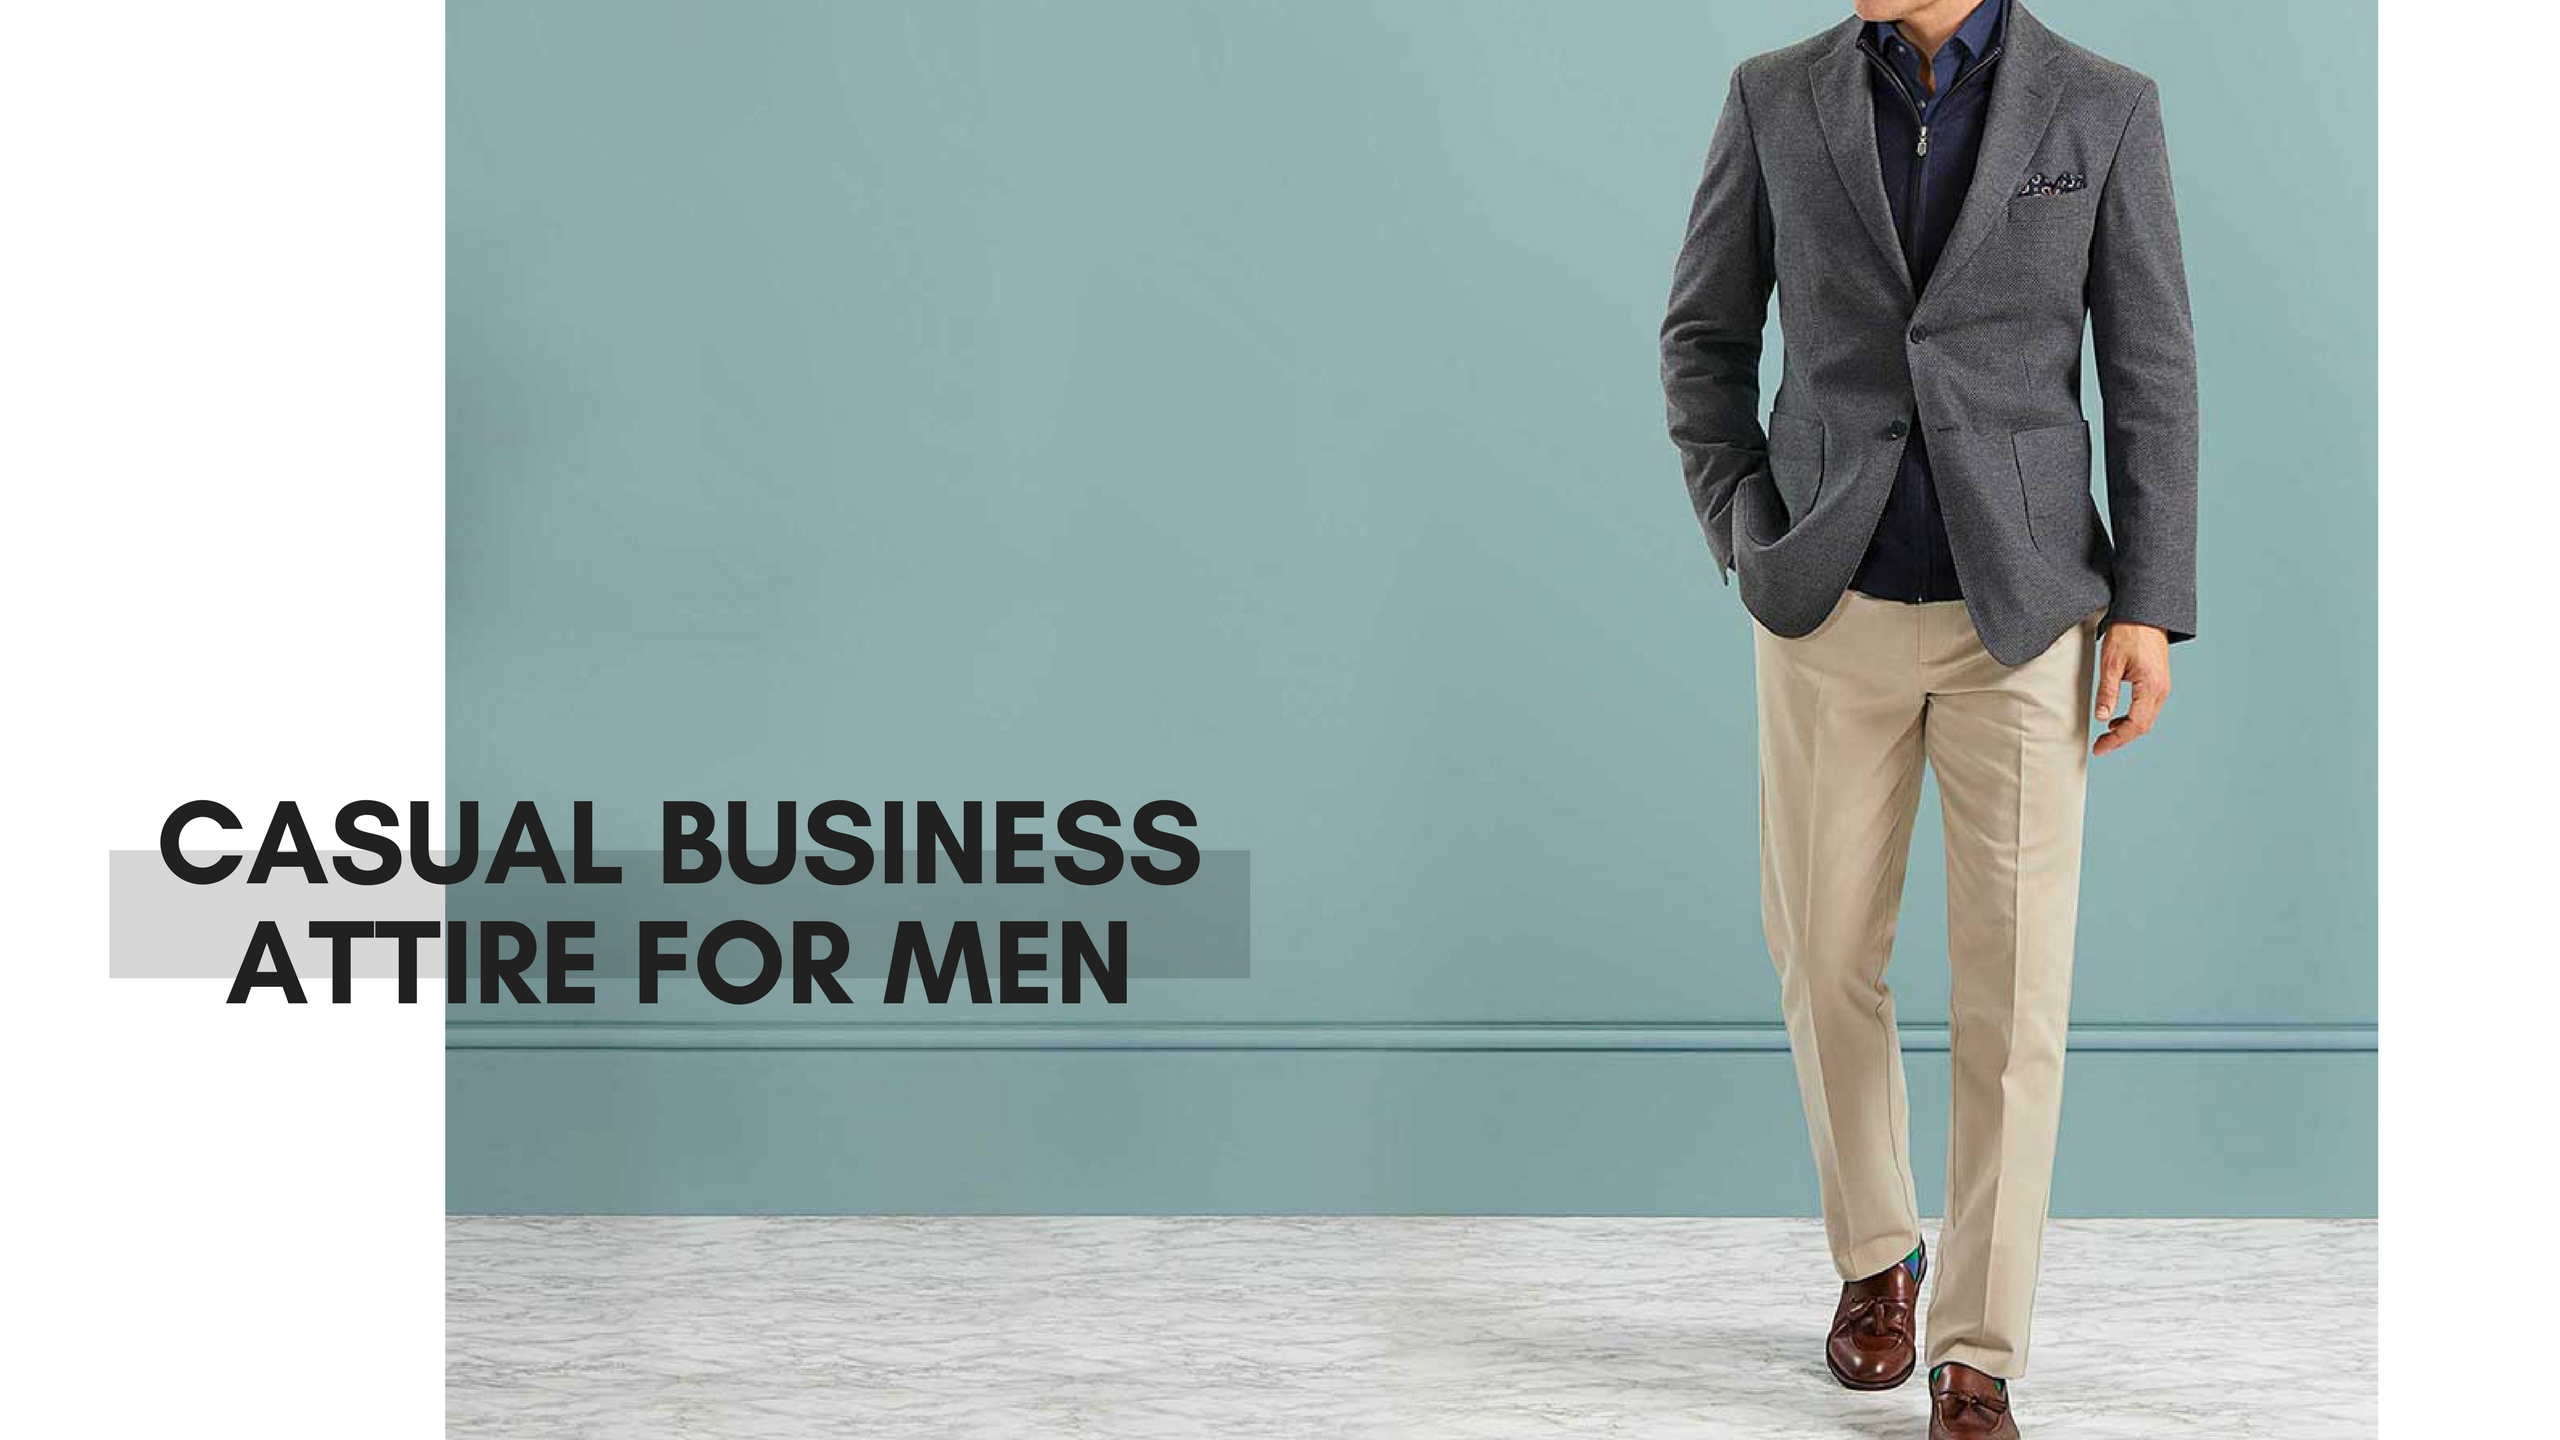 POWER DRESSING FOR MEN - The How's & Why's Of Casual Business Attire